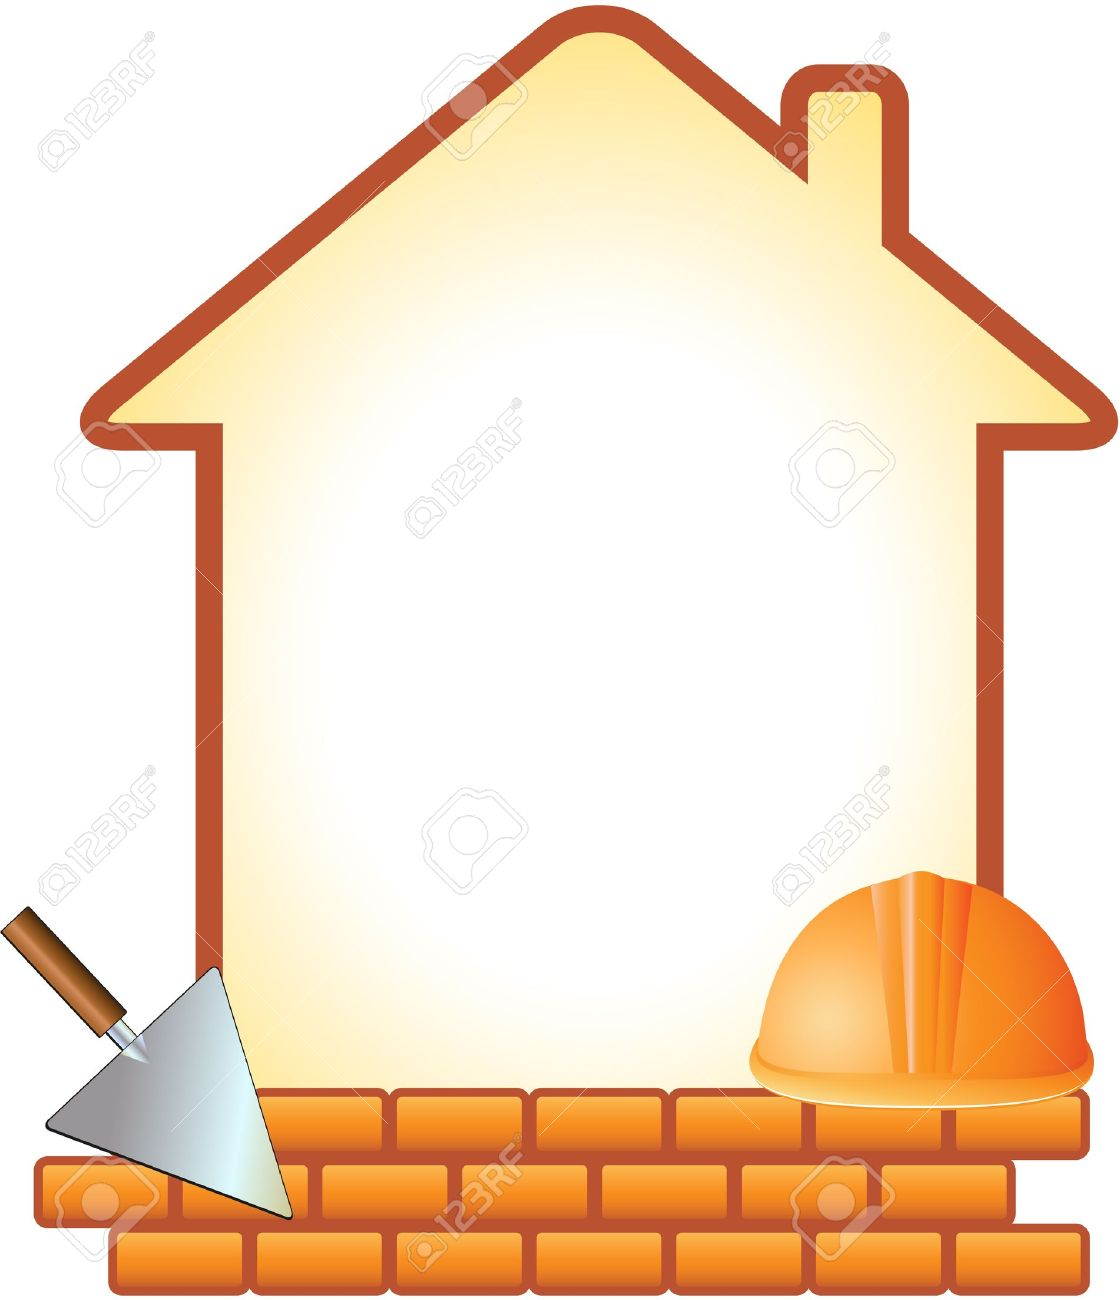 icon with helmet, trowel, bricks and house with space for text - 15824749